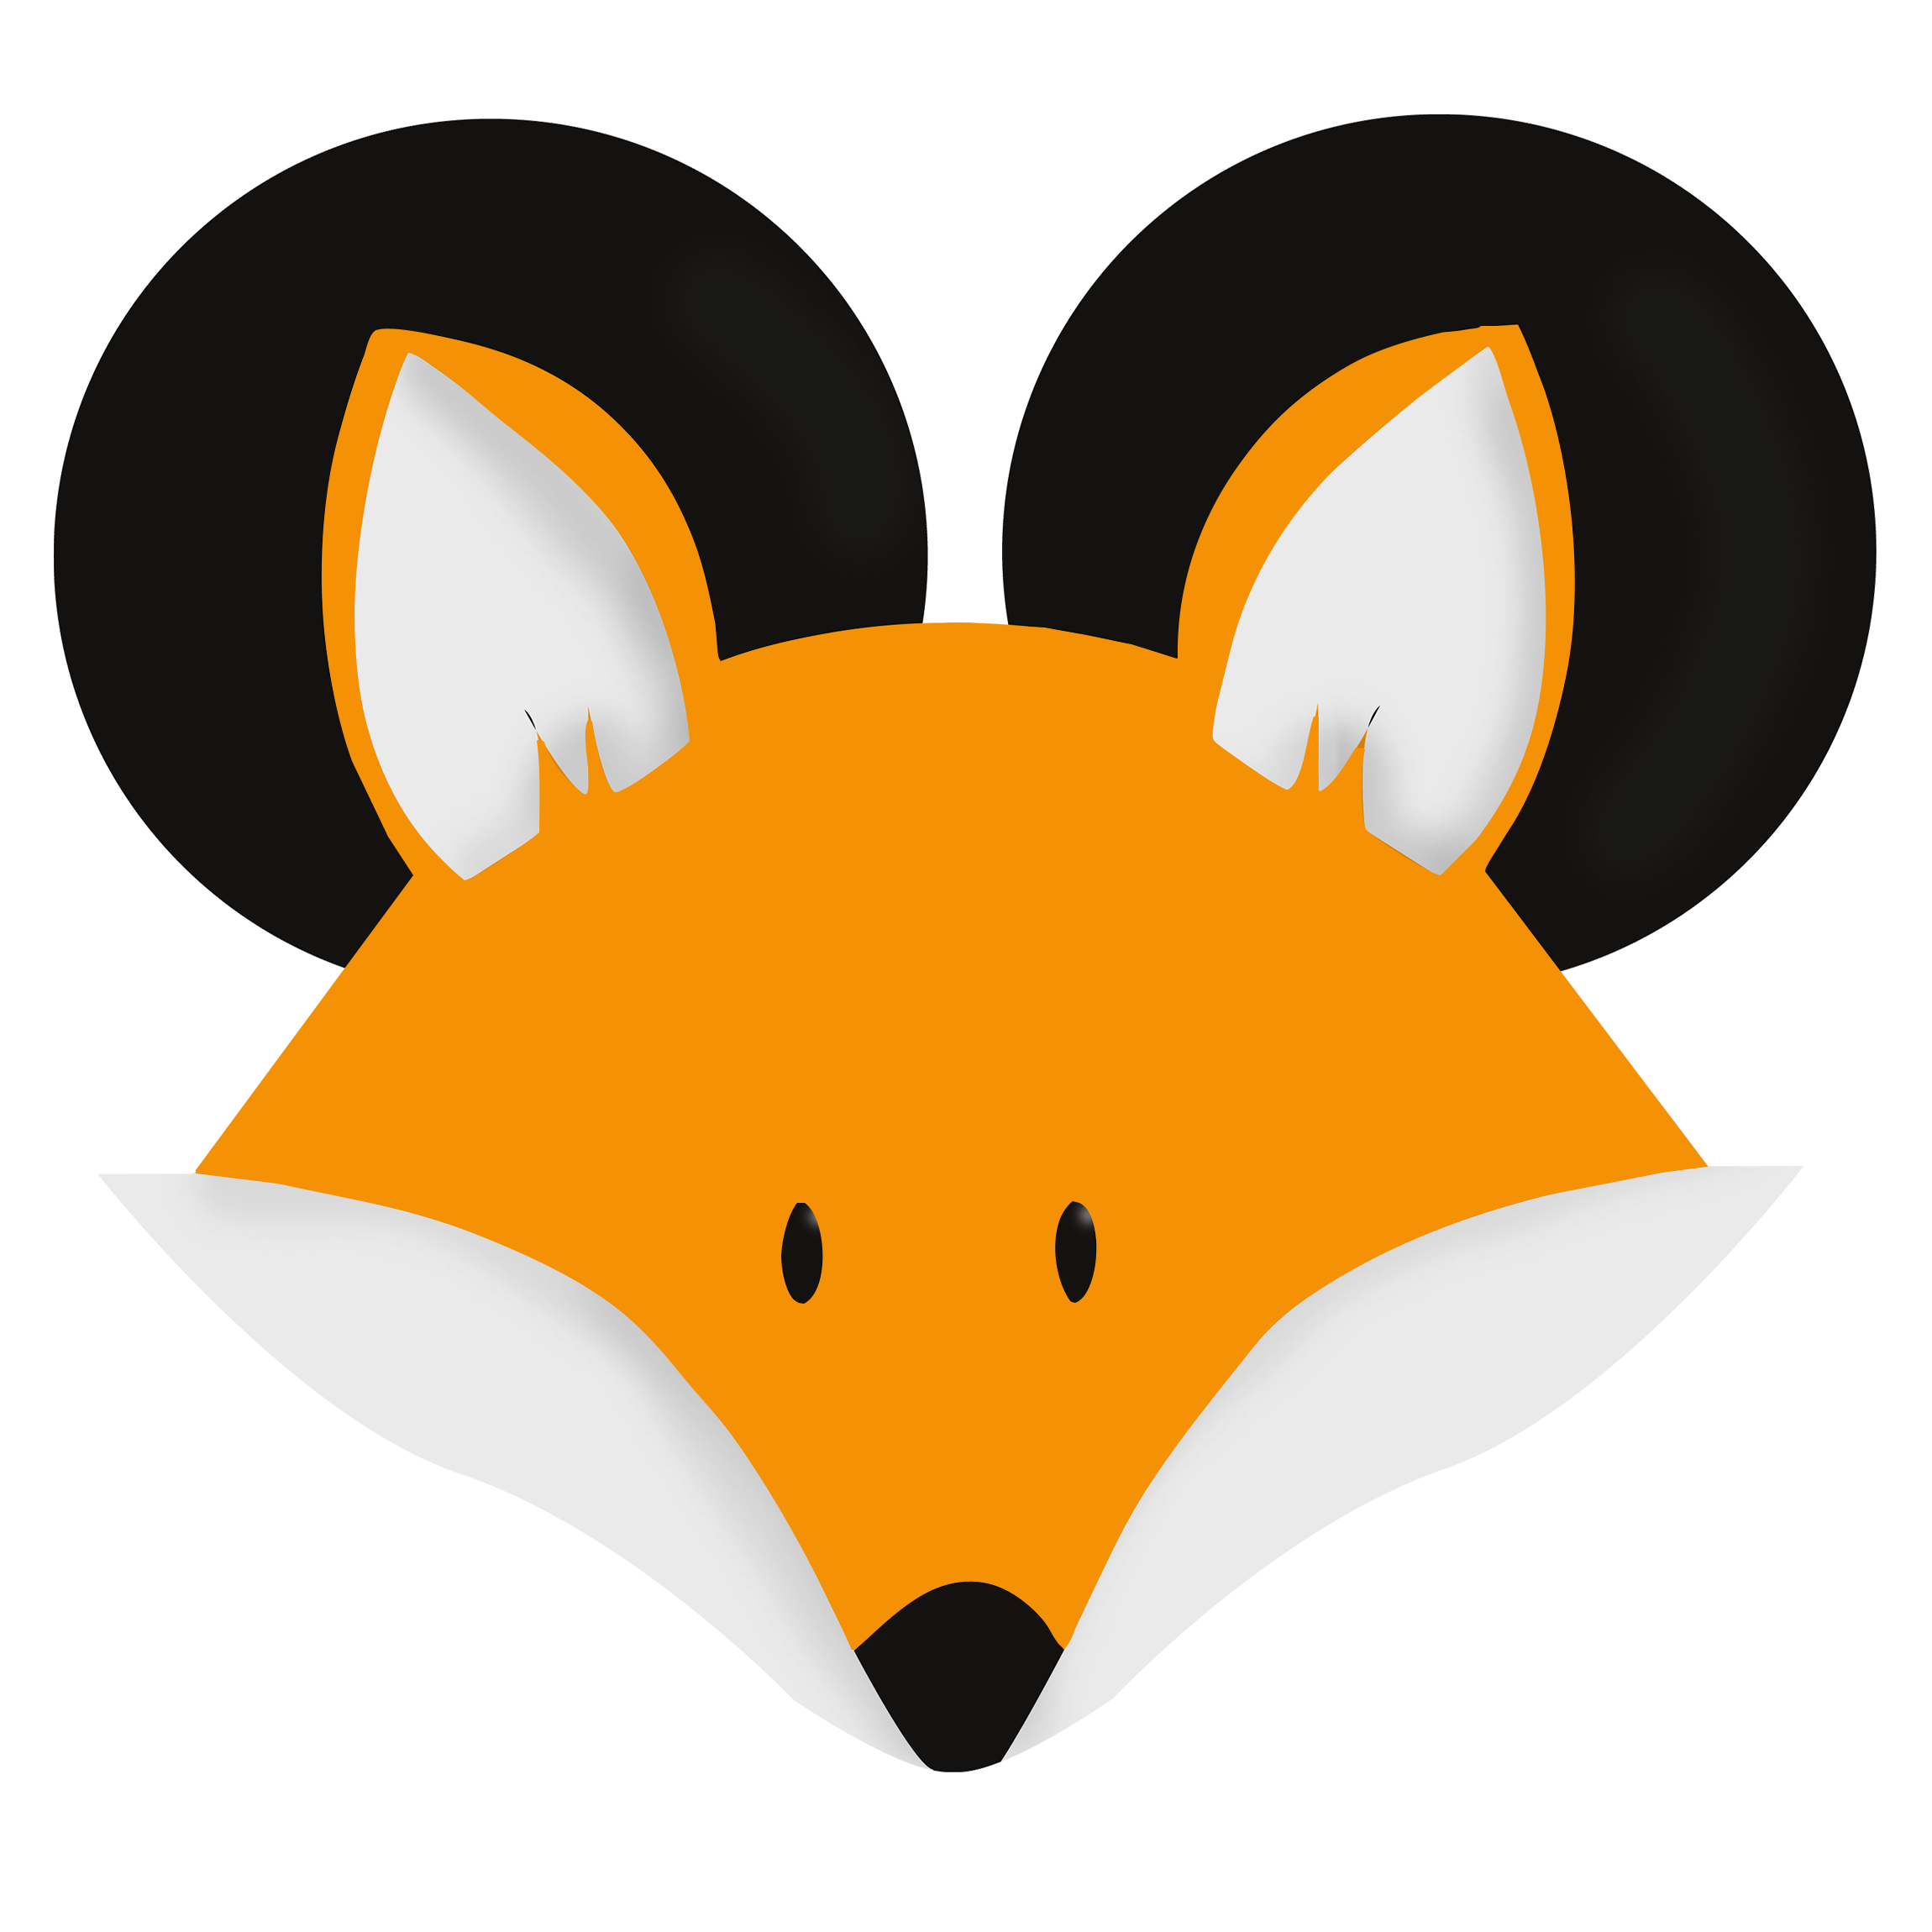 disneyfox_logo-shaded.png